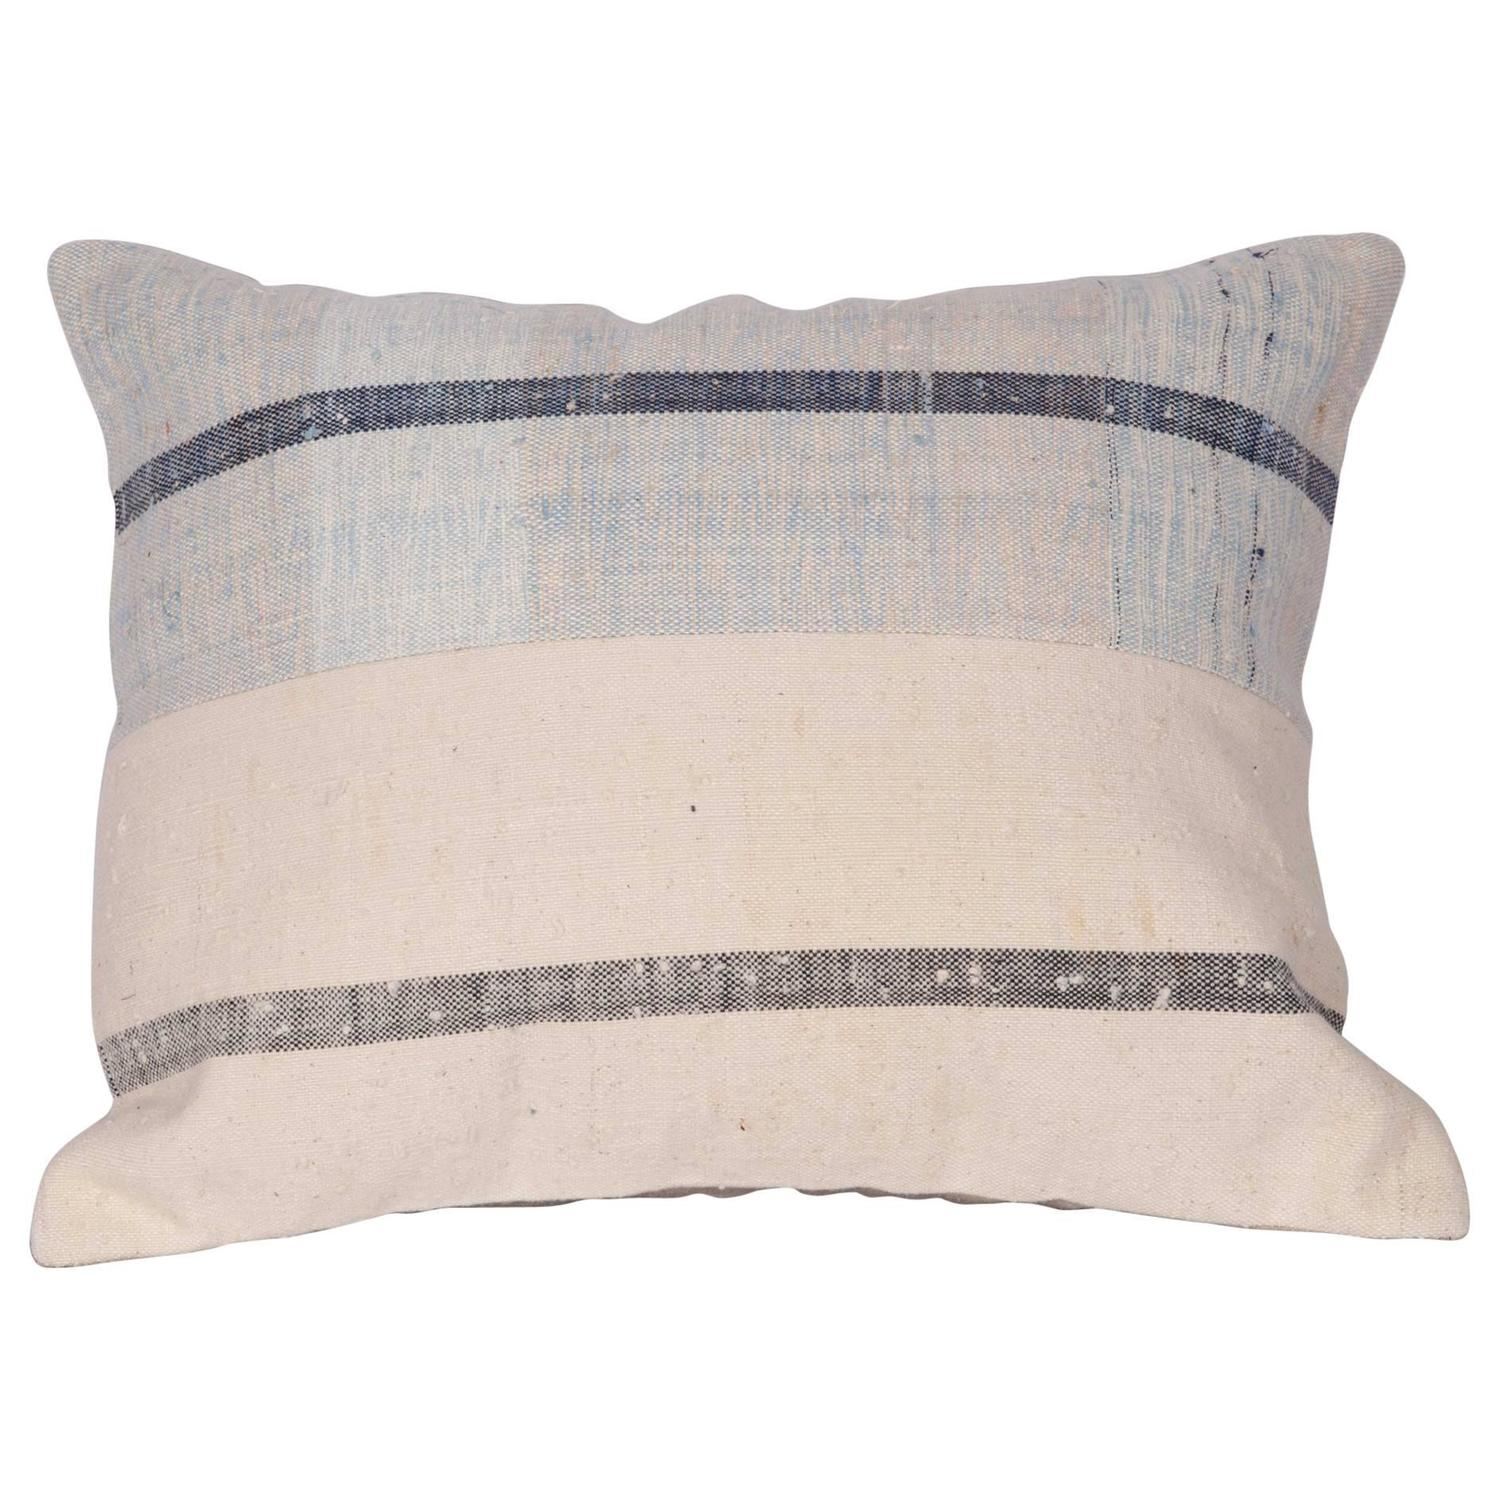 Pillow Made Out of a Mid-20th Century Anatolian Cotton Kilim For Sale at 1stdibs